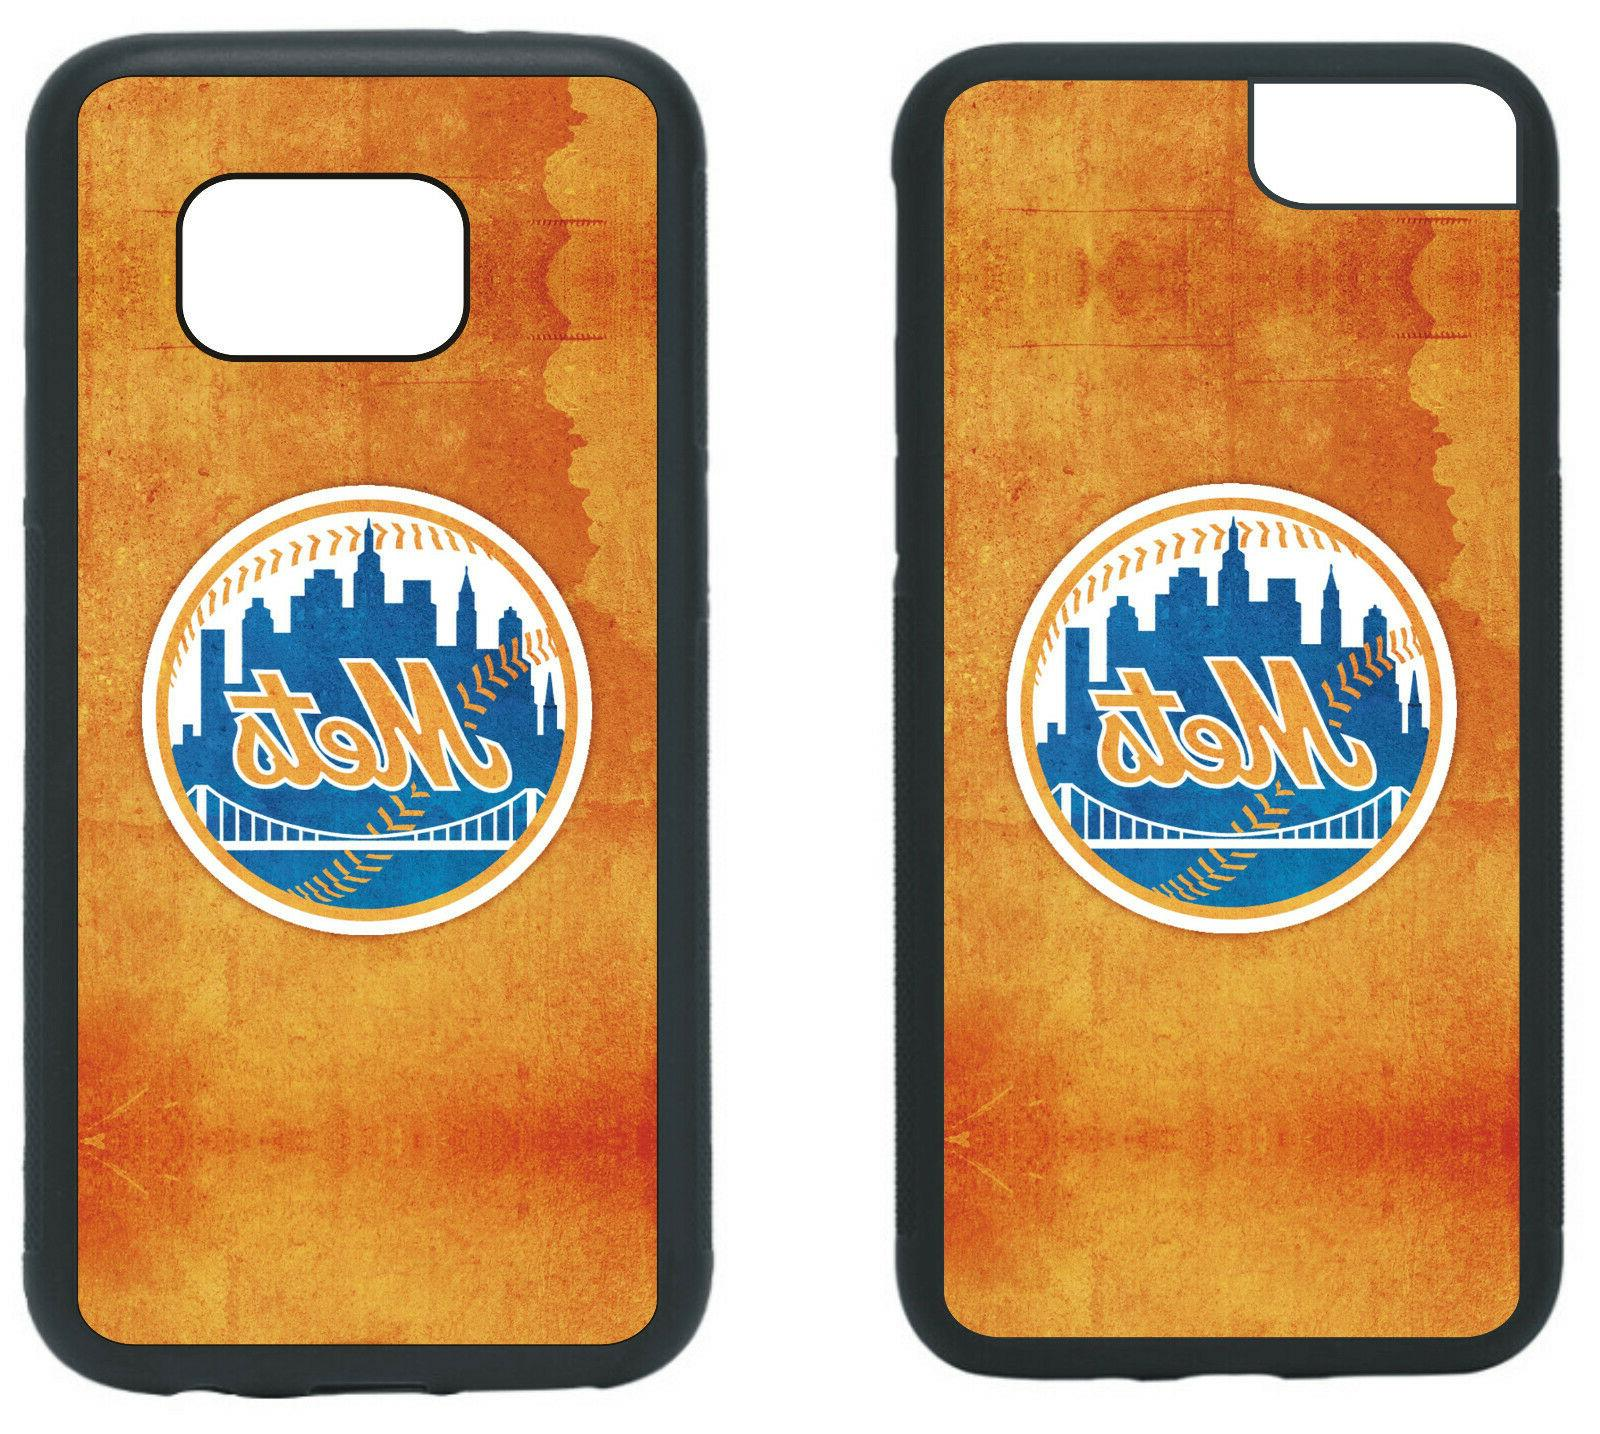 new york mets phone case cover fits